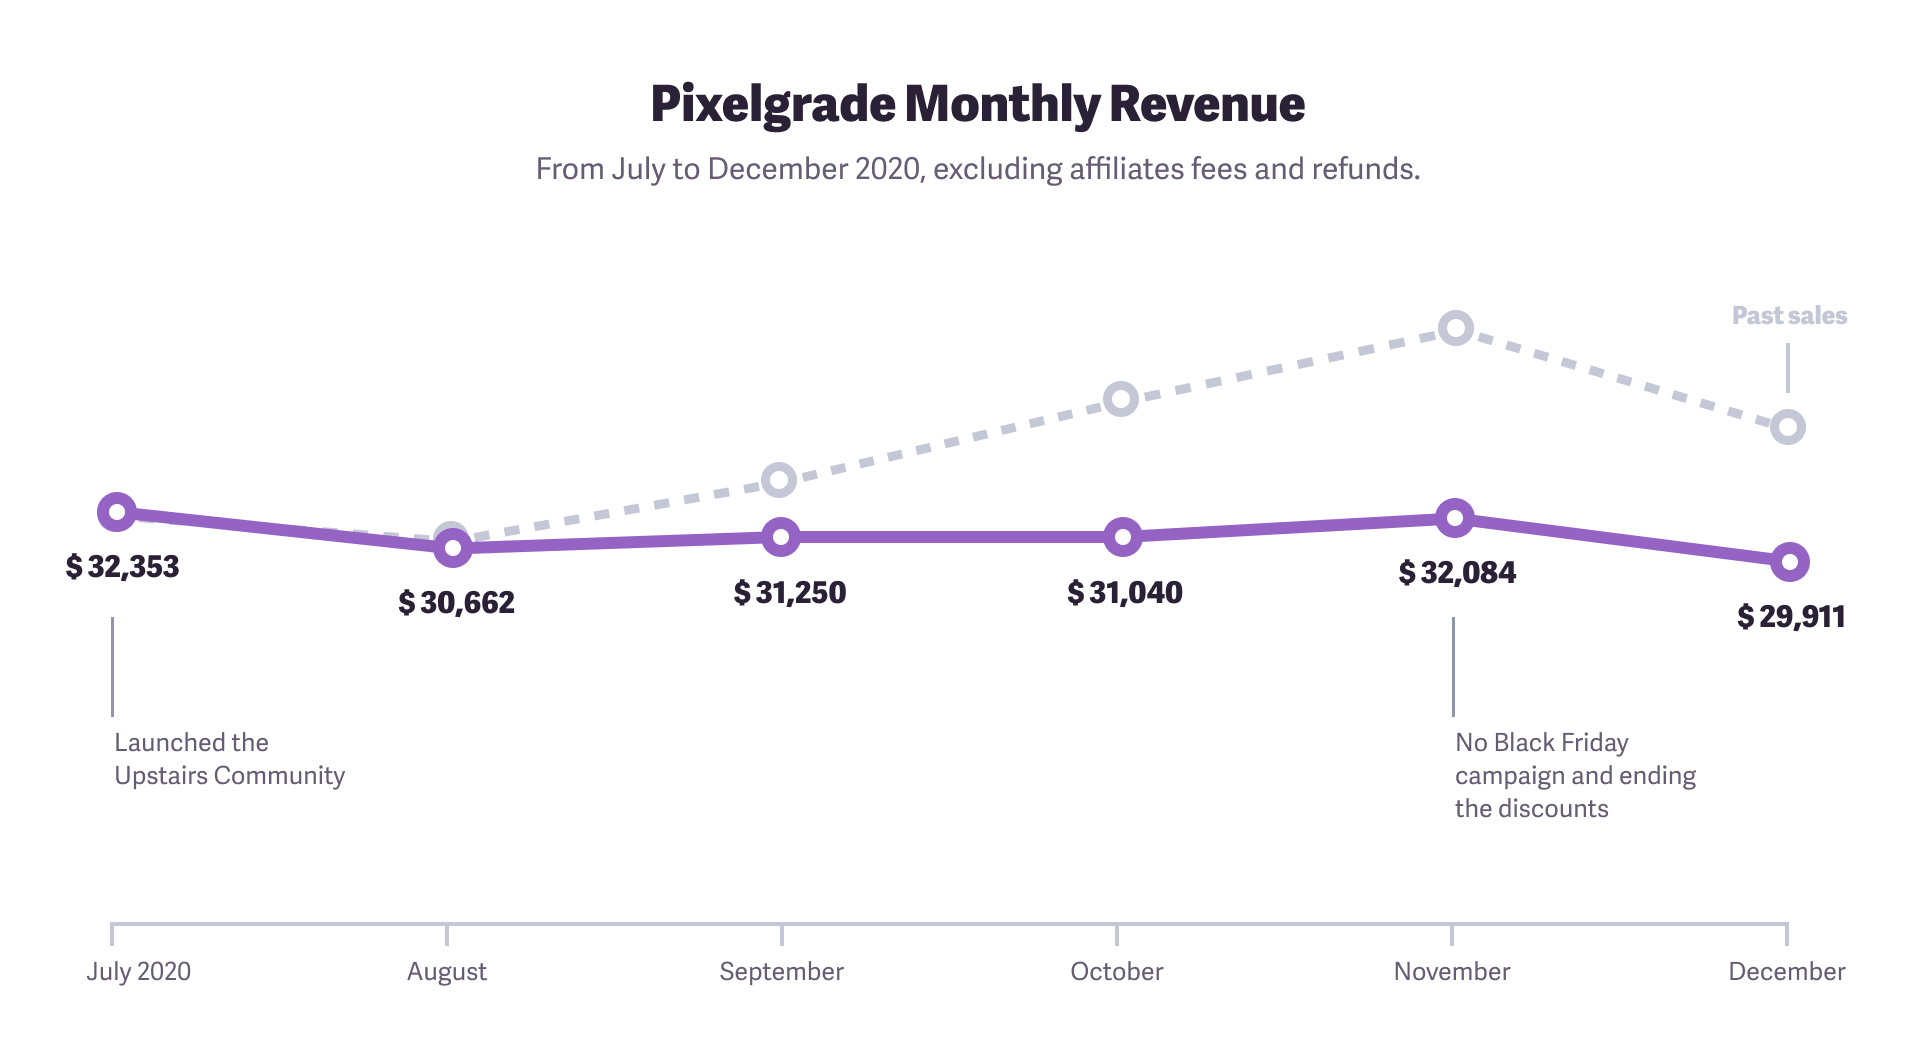 Pixelgrade monthly revenue evolution of the last months of 2020